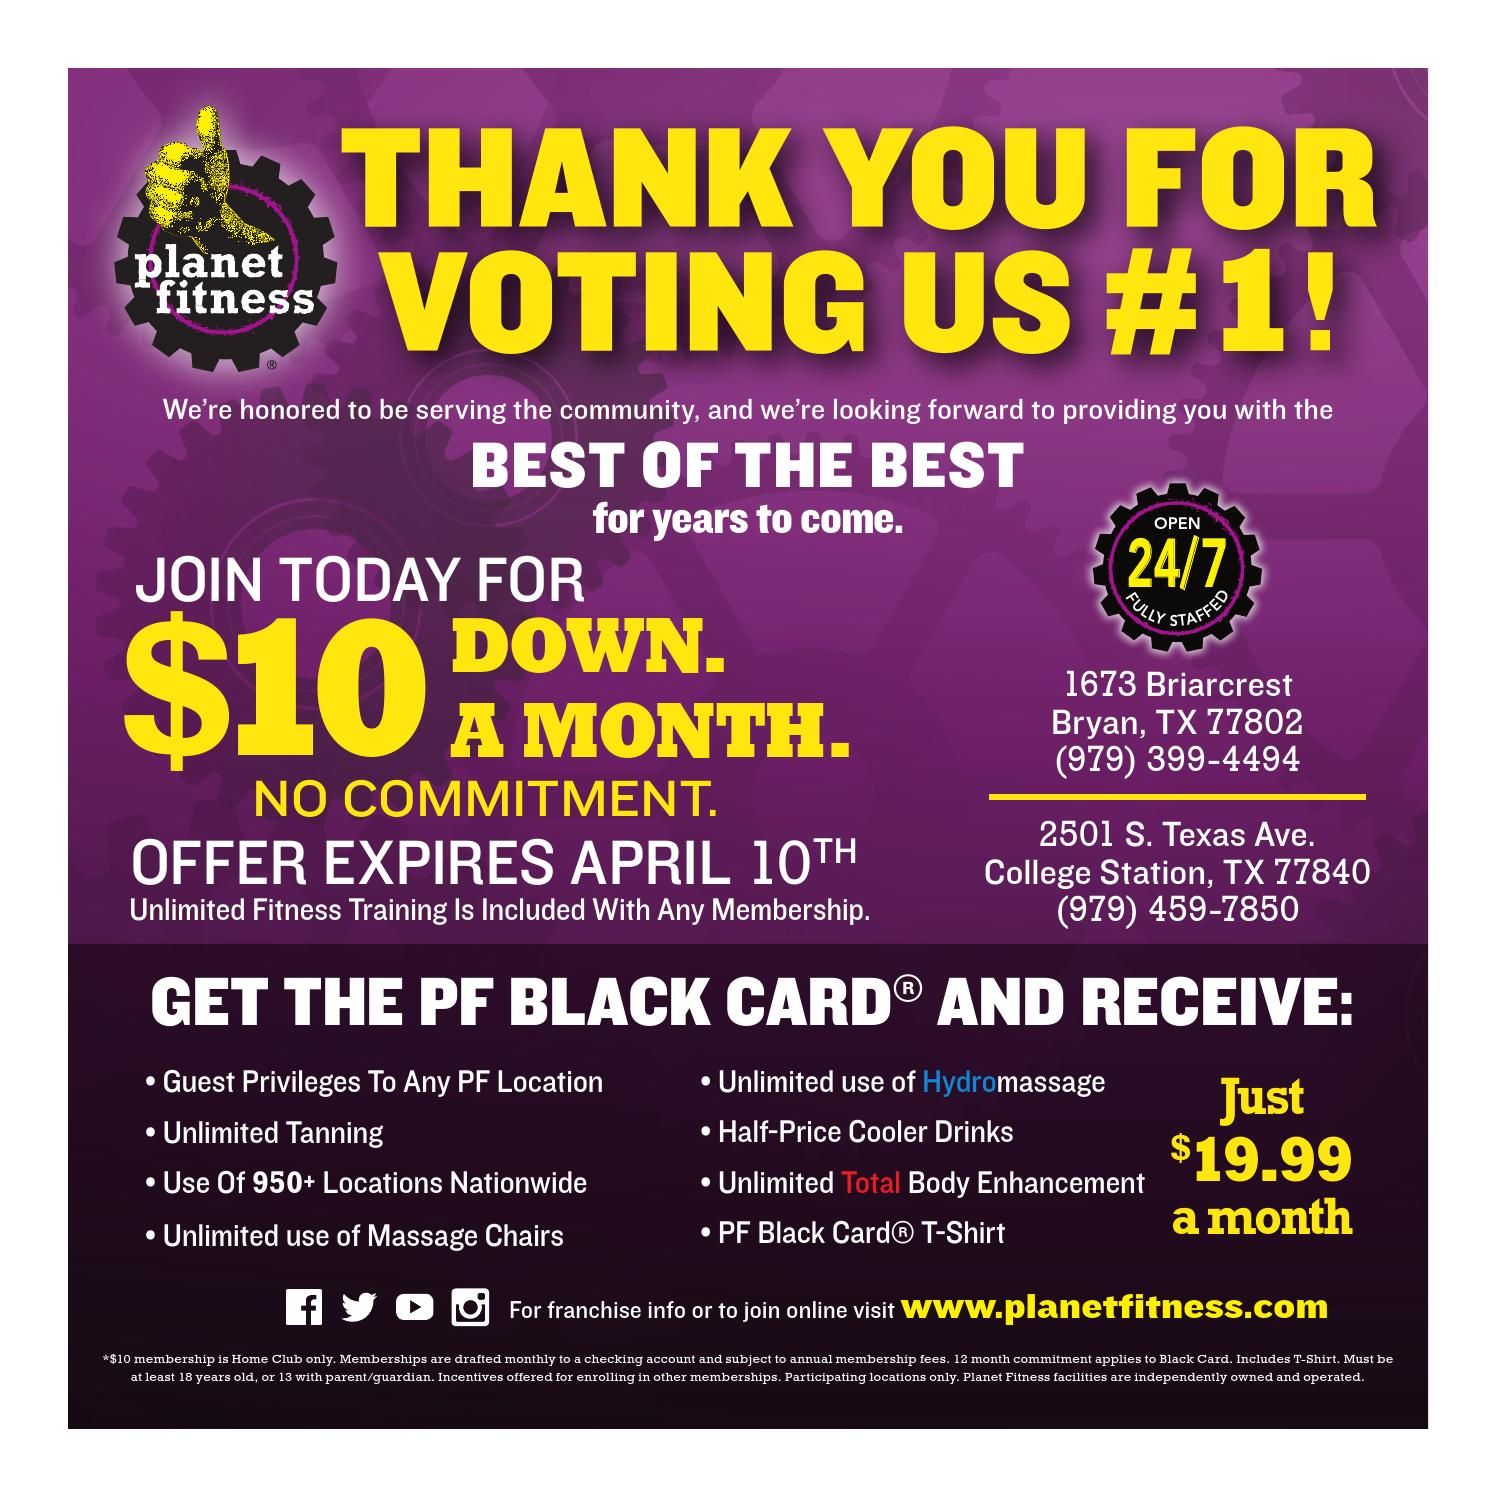 can you tan at planet fitness without black card